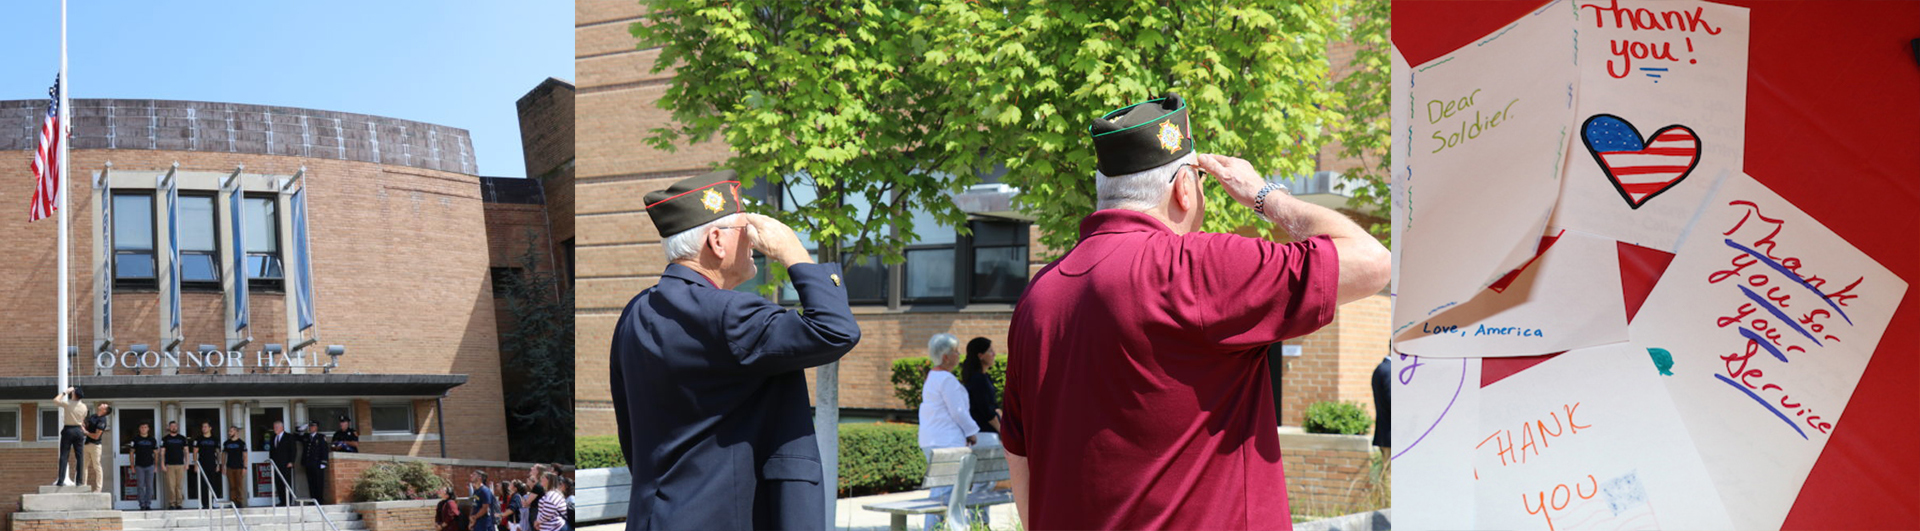 Sept. 11 remembrance events at both campuses in 2018.